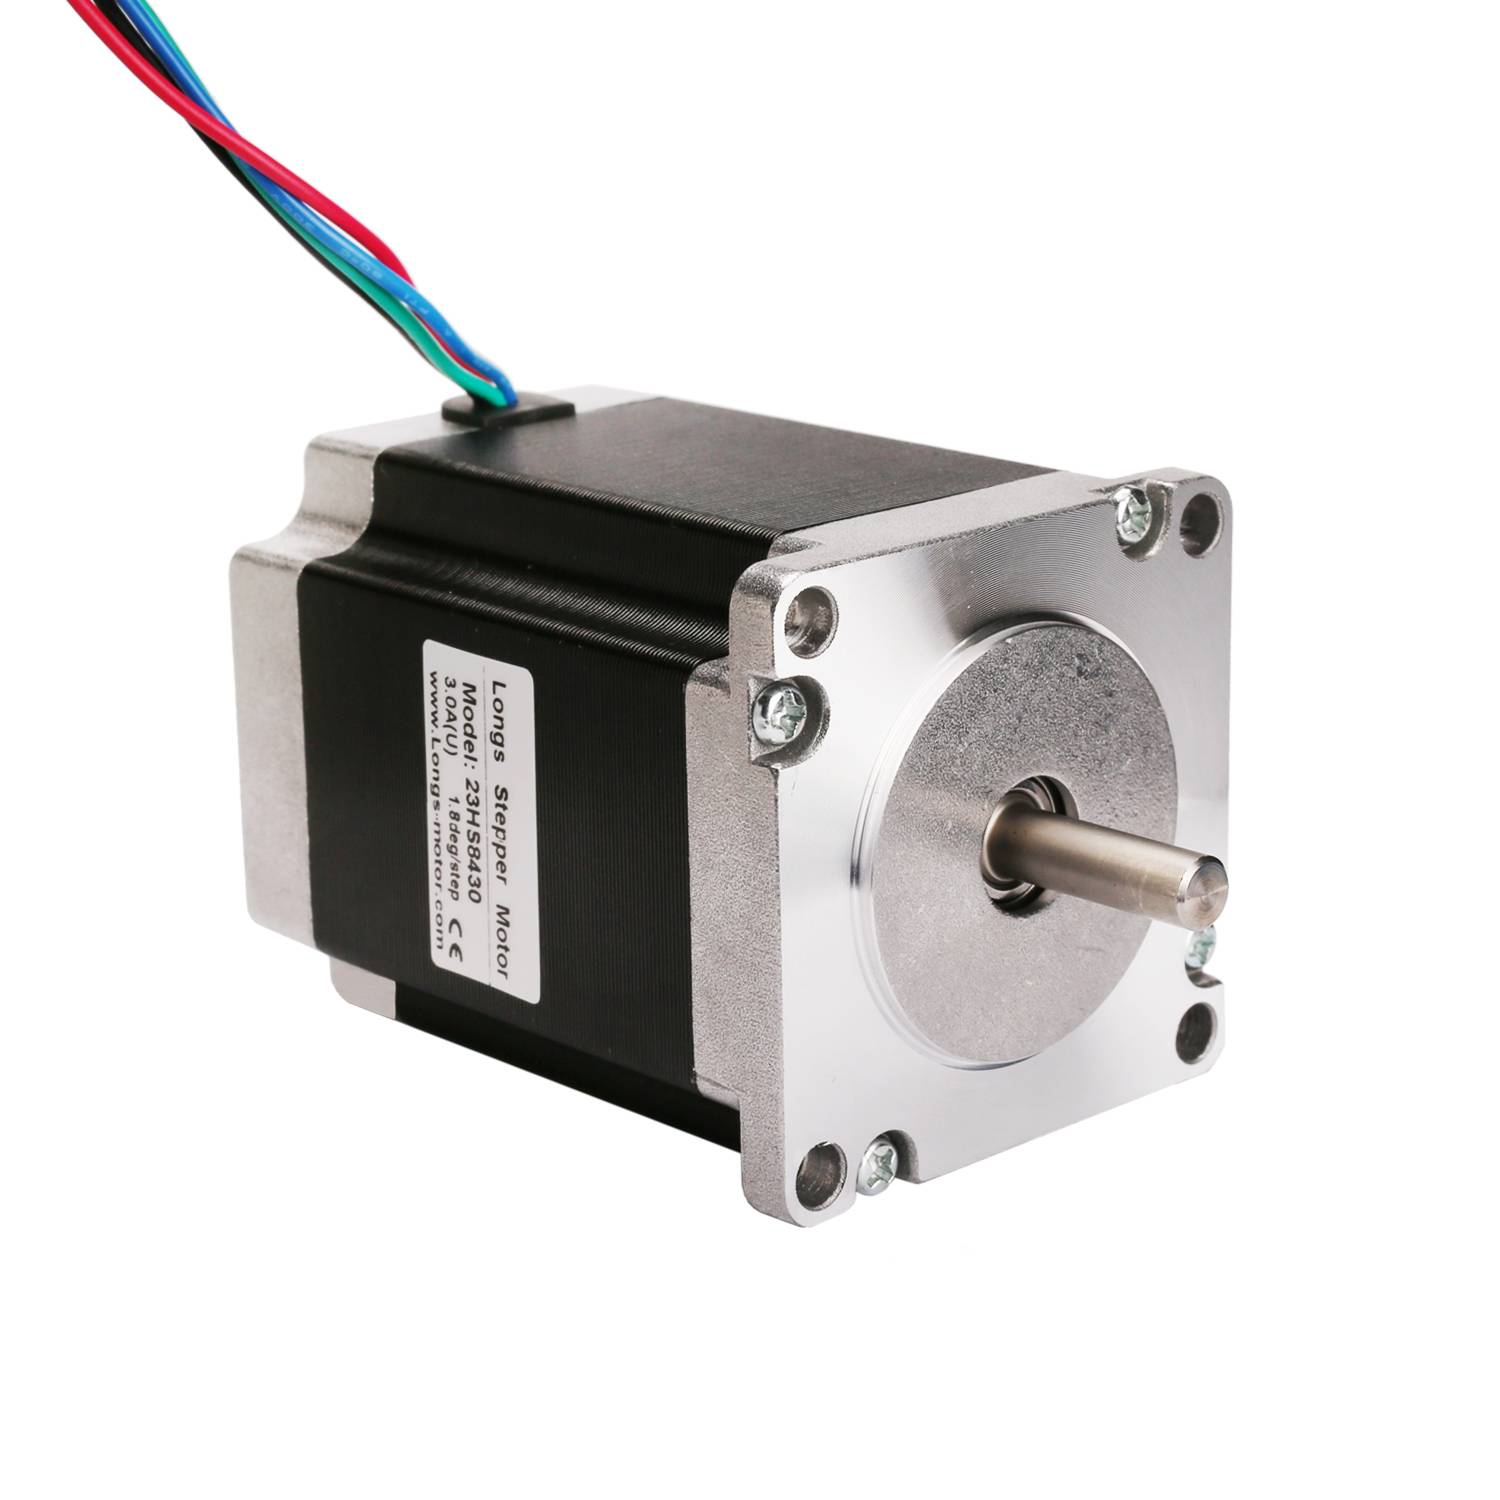 HYBRID Stepper Motors, nema23HS Image ແນະນໍາ